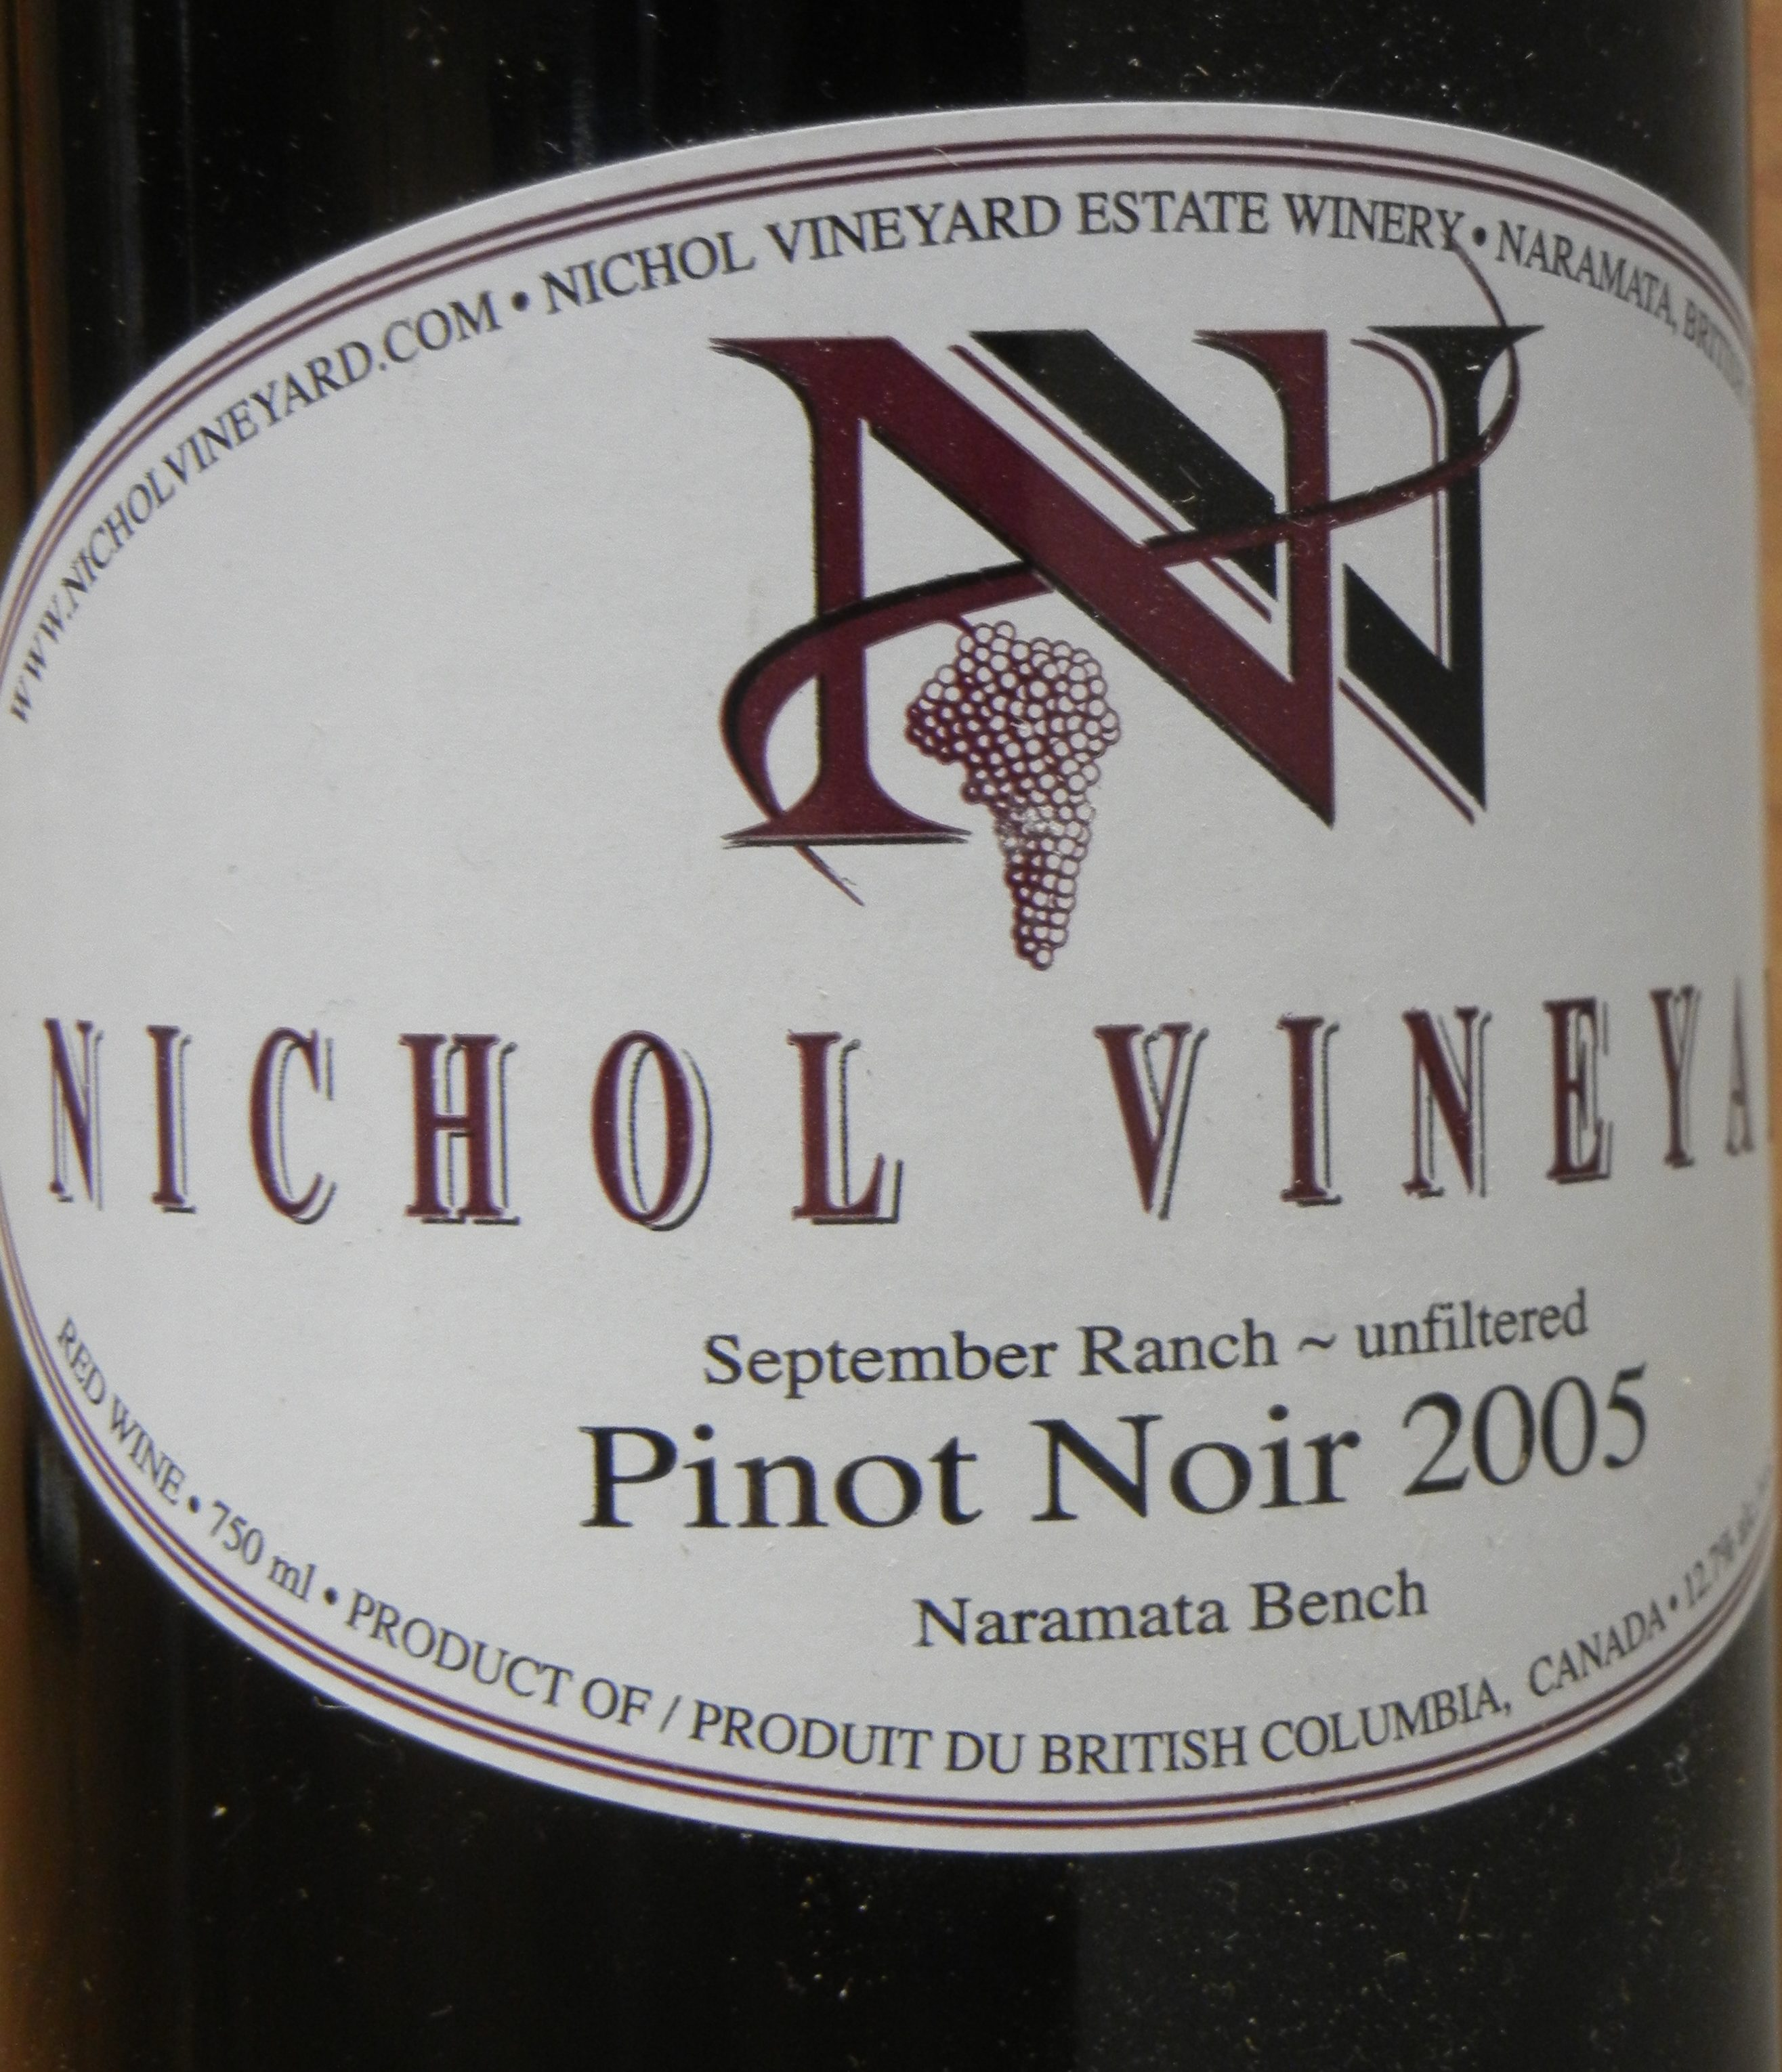 Nichol Vineyard Pinot Noir 2005 Label - BC Pinot Noir Tasting Review 3